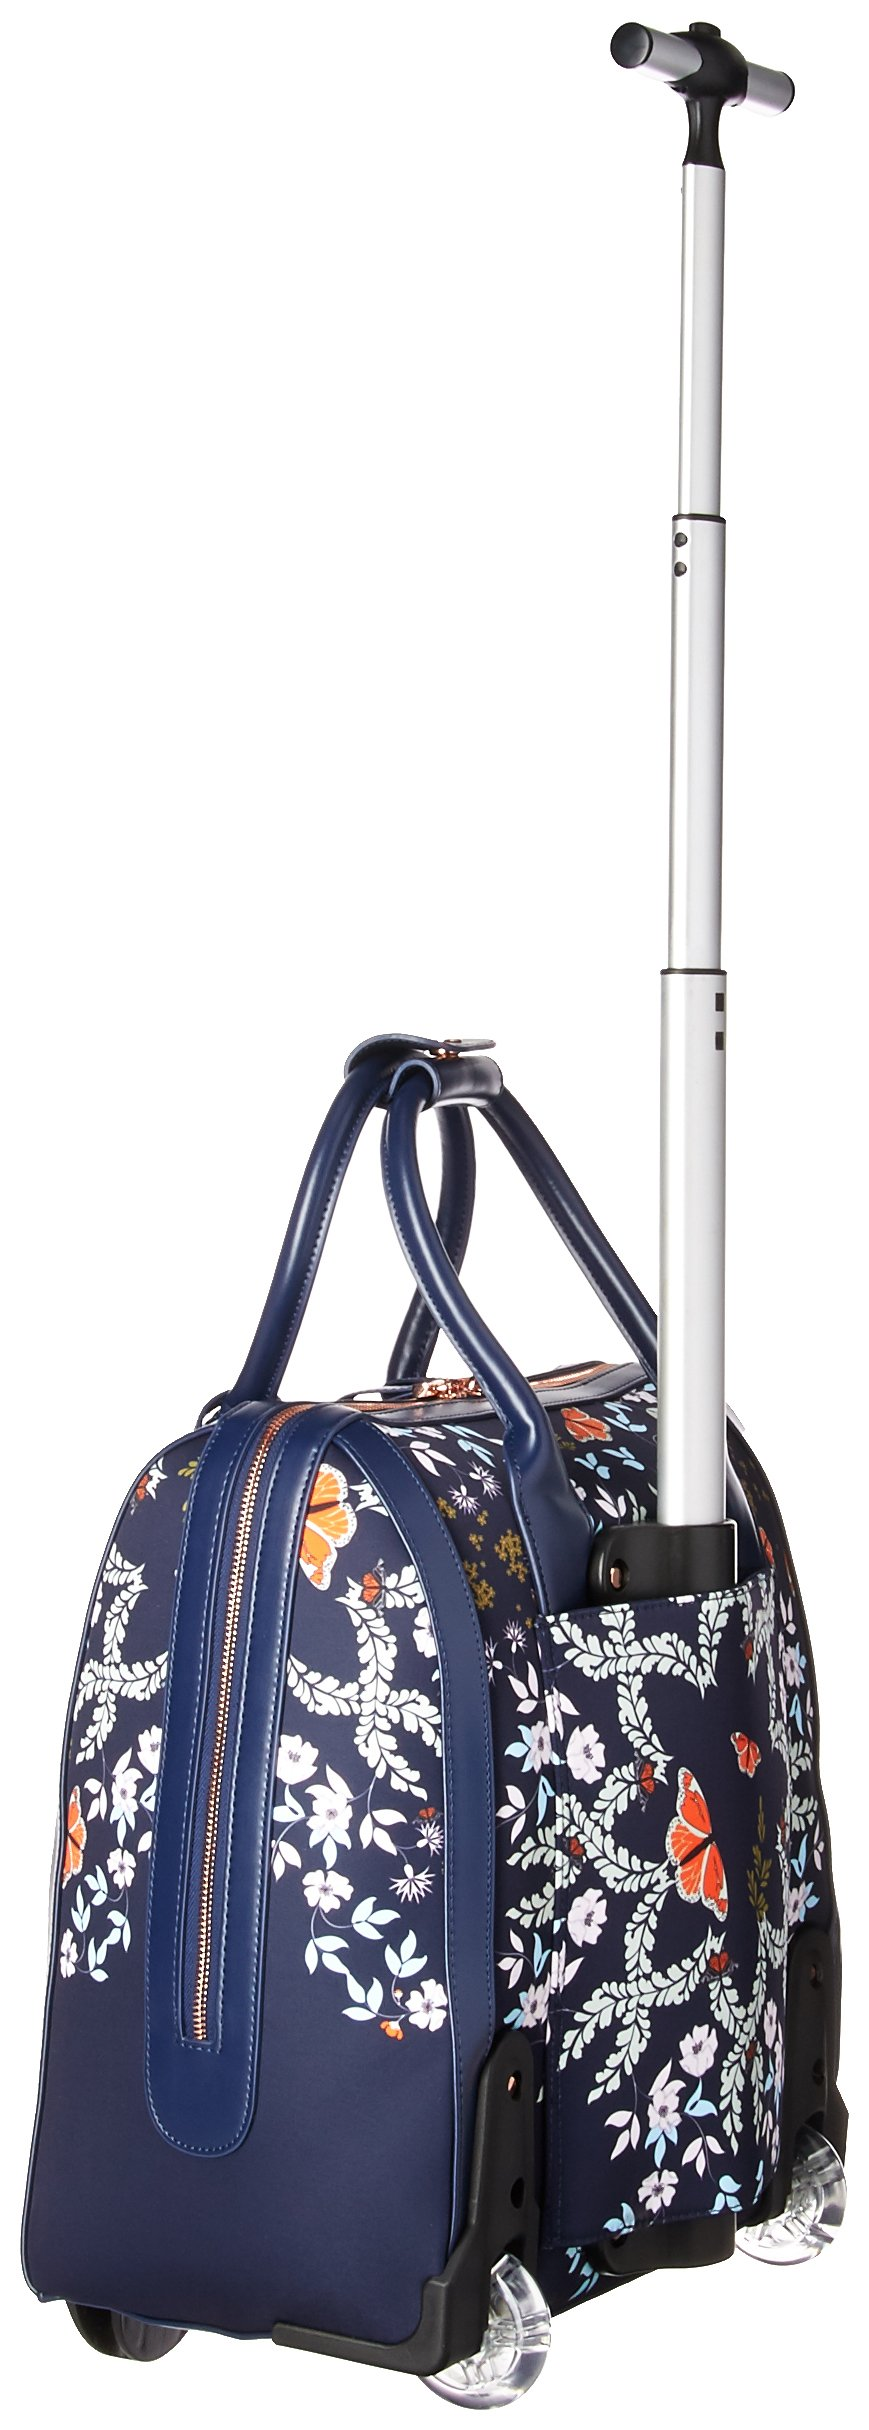 Ted Baker Women's Dafni, Mid Blue by Ted Baker (Image #2)